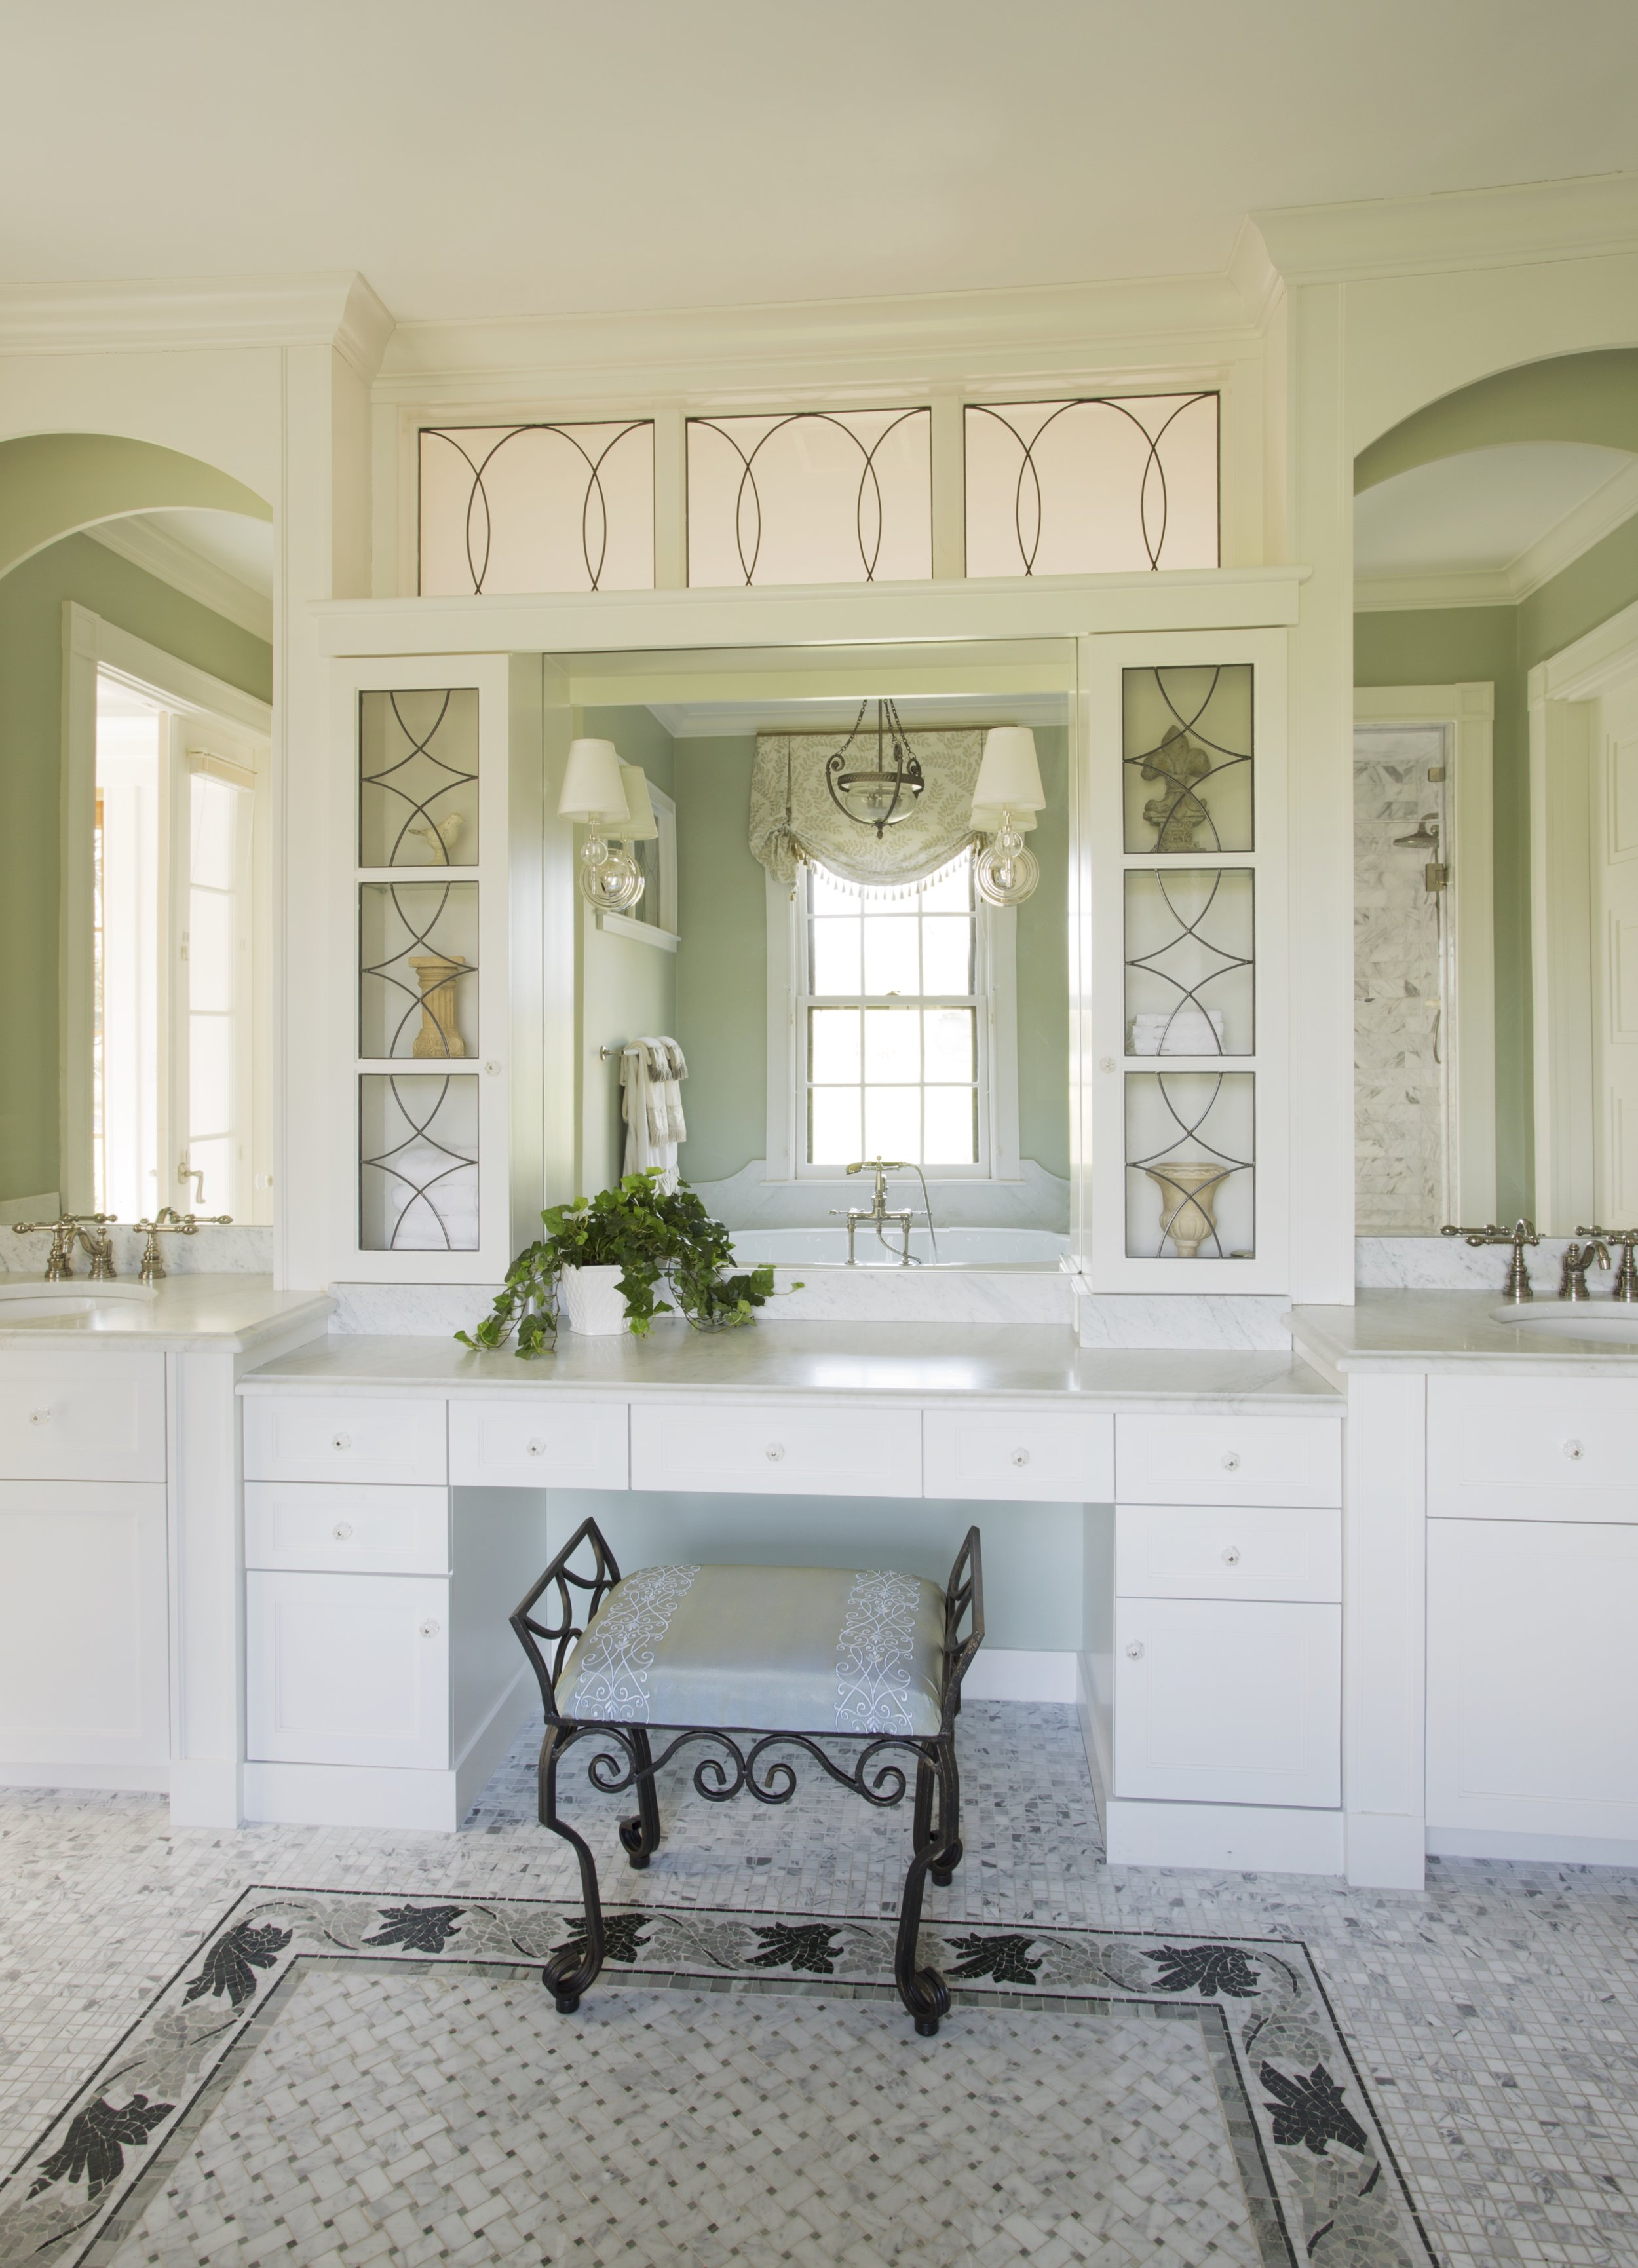 "These bathroom wall sconces were mounted on the mirror - an excellent way to double the light! They are mounted at about 65"" from the floor which is ideal if you are standing. Since this is a vanity area with a lower countertop, they could also be mounted a bit lower."